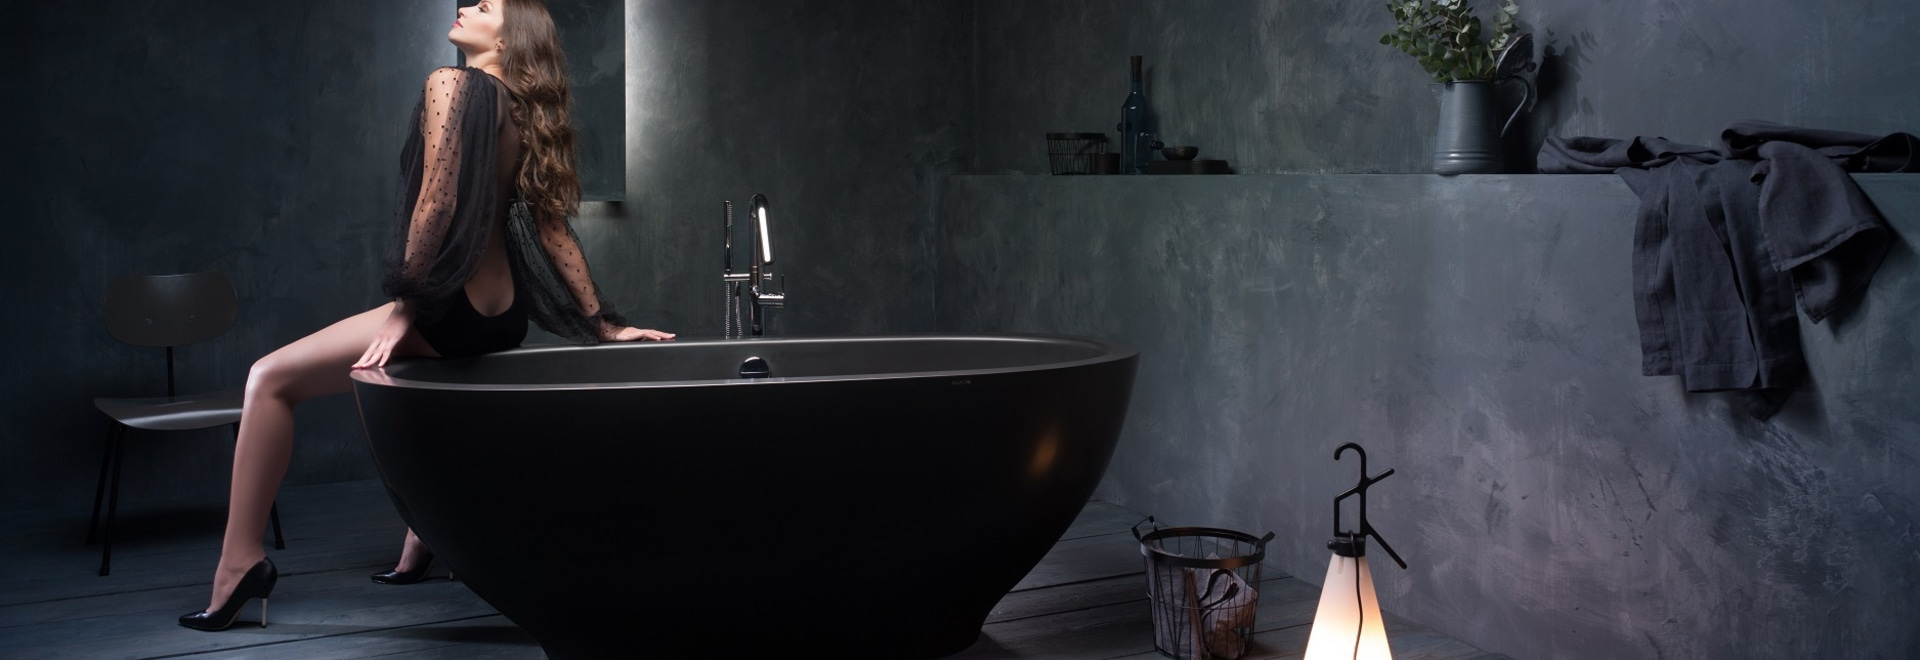 KAROLINA - a stylish black stone bathtub